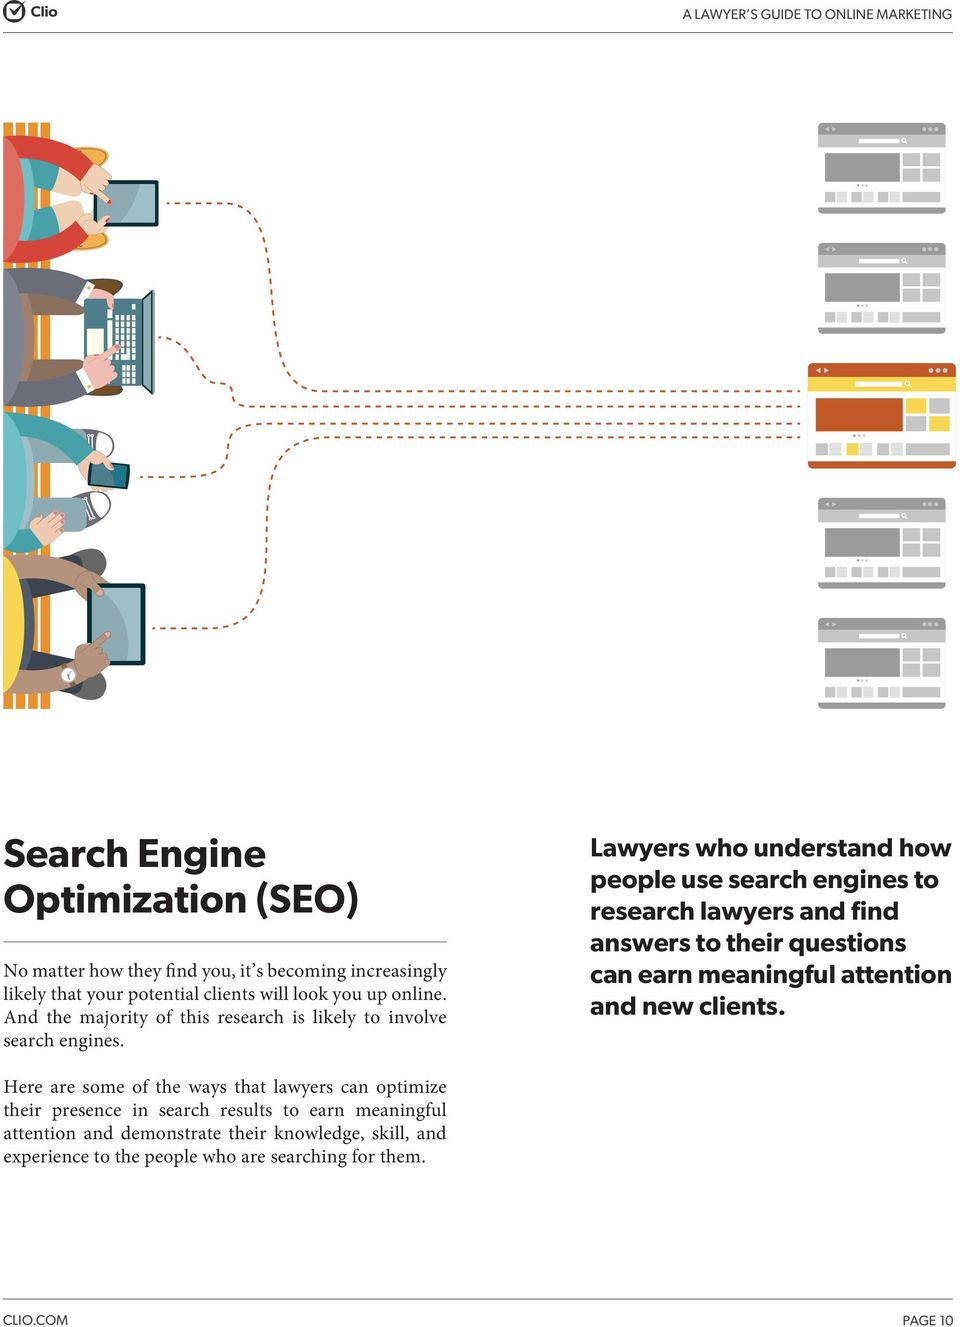 Lawyers who understand how people use search engines to research lawyers and find answers to their questions can earn meaningful attention and new